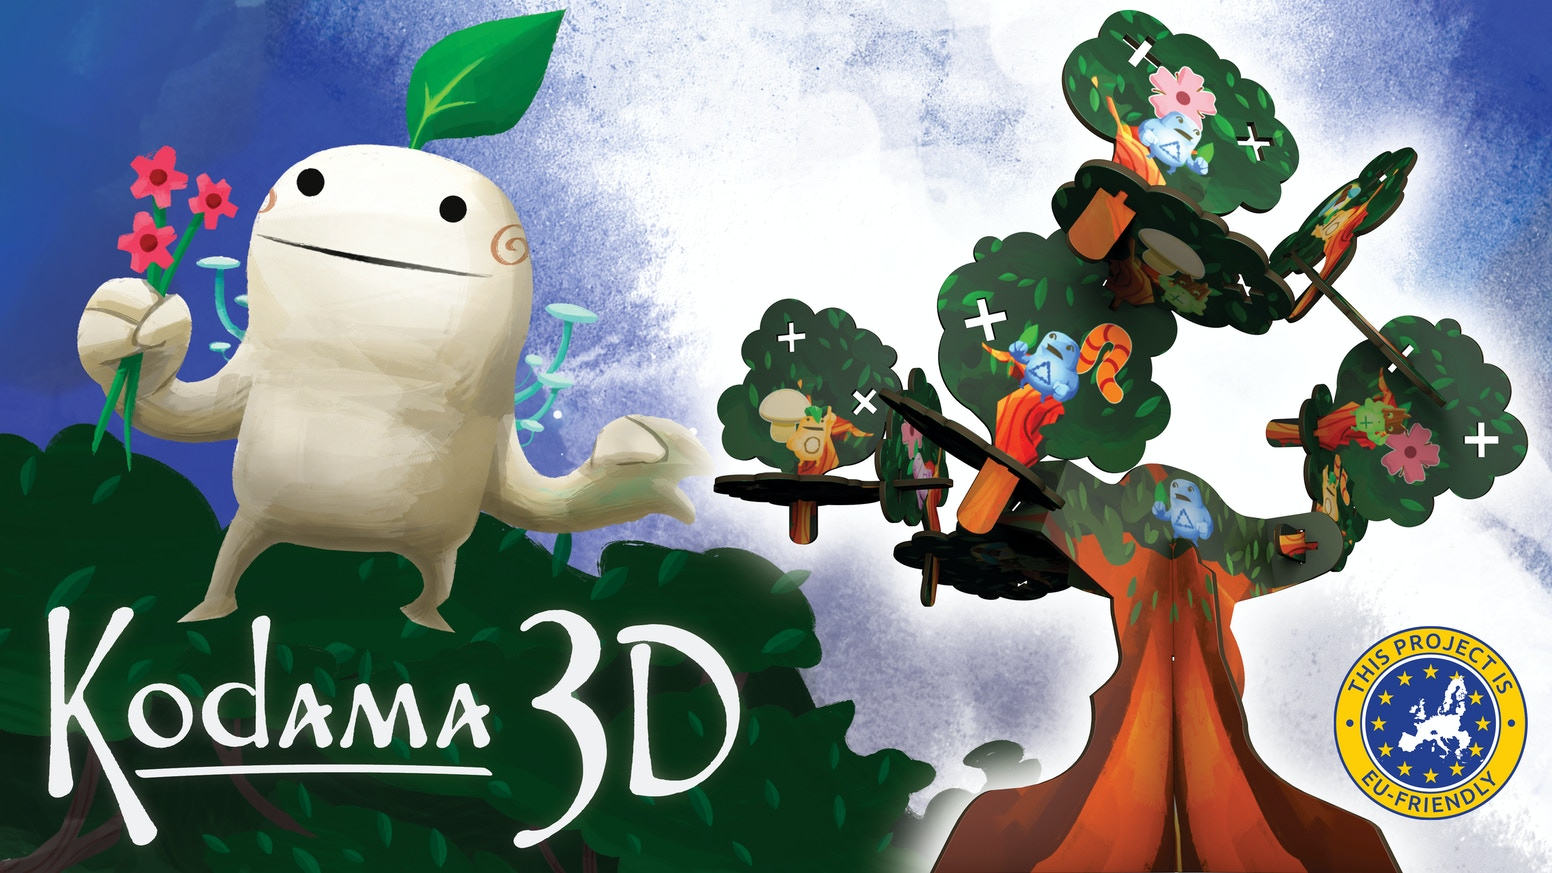 An inTREEguing 3D version of Kodama: The Tree Spirits!